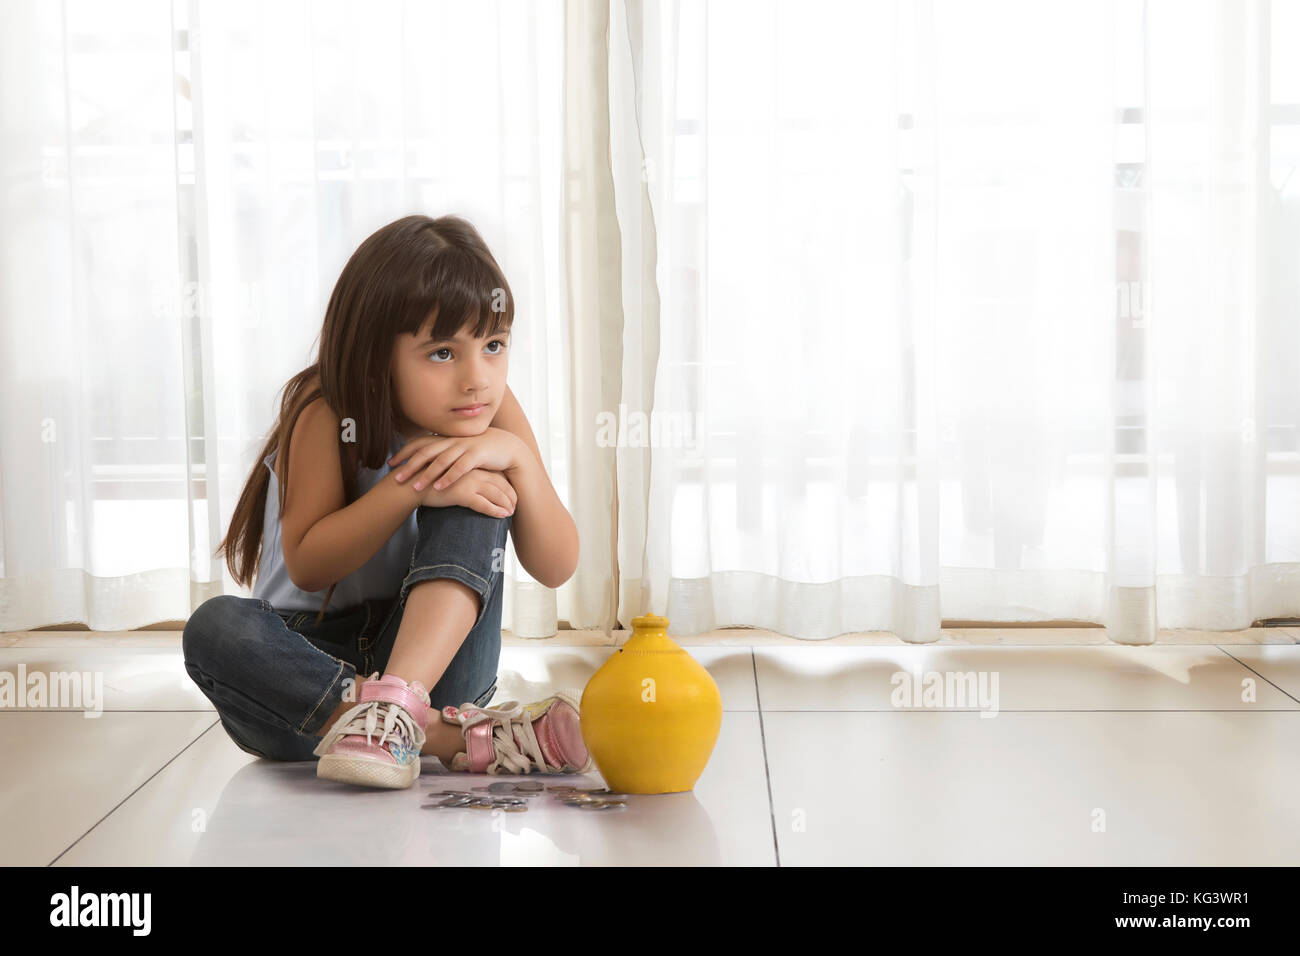 Little girl sitting on floor with clay piggy bank and coins - Stock Image